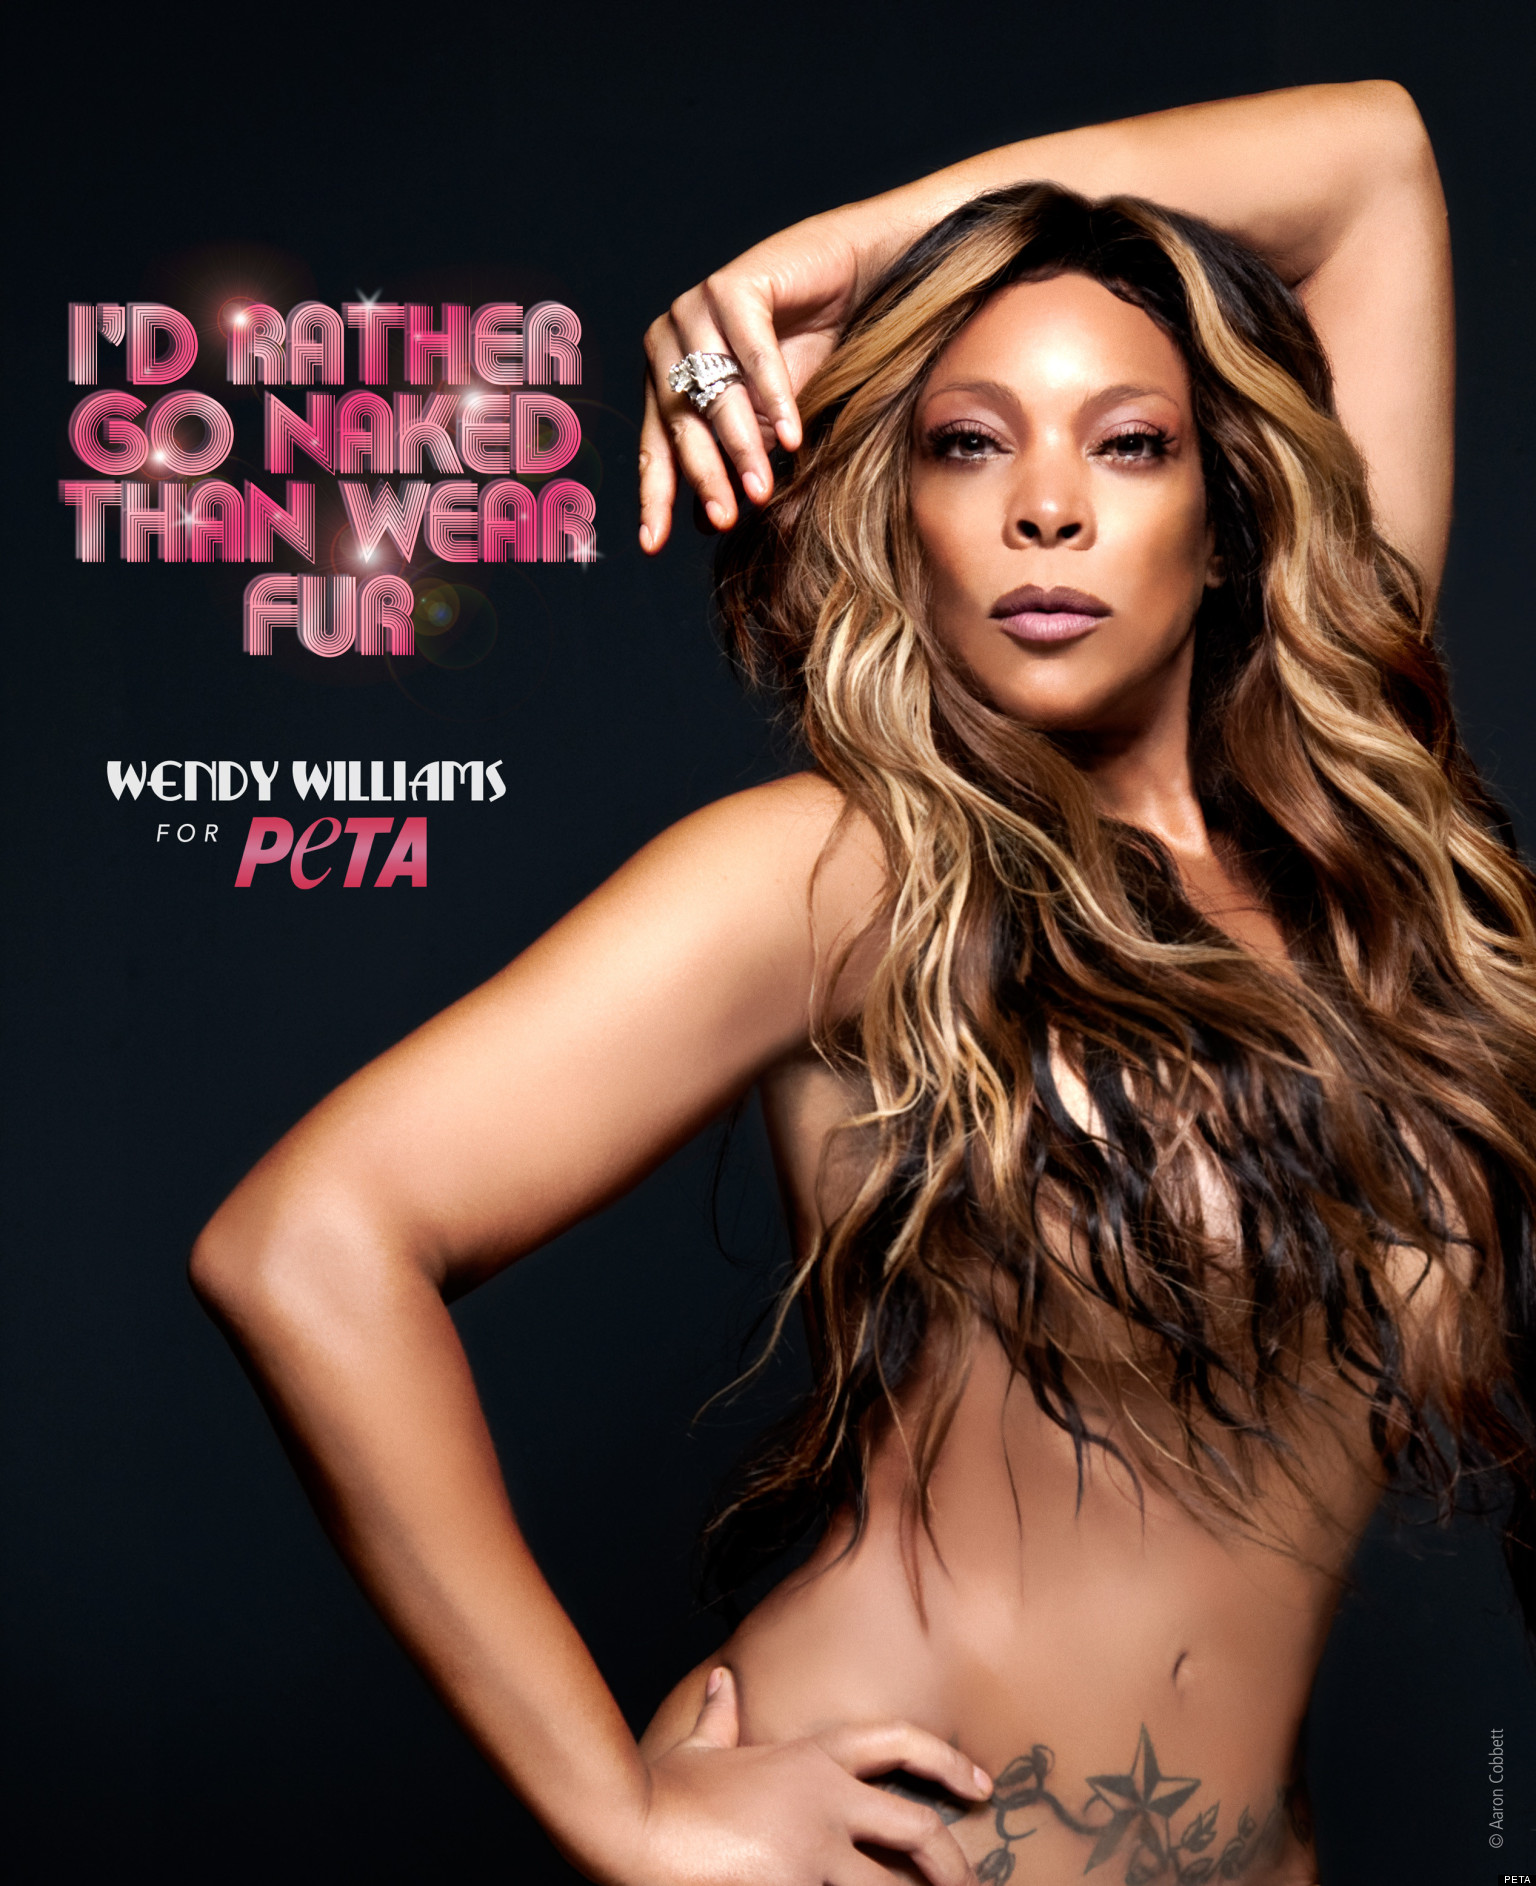 Wendy Williams Nude In PETA Ad NSFW PHOTOS  HuffPost